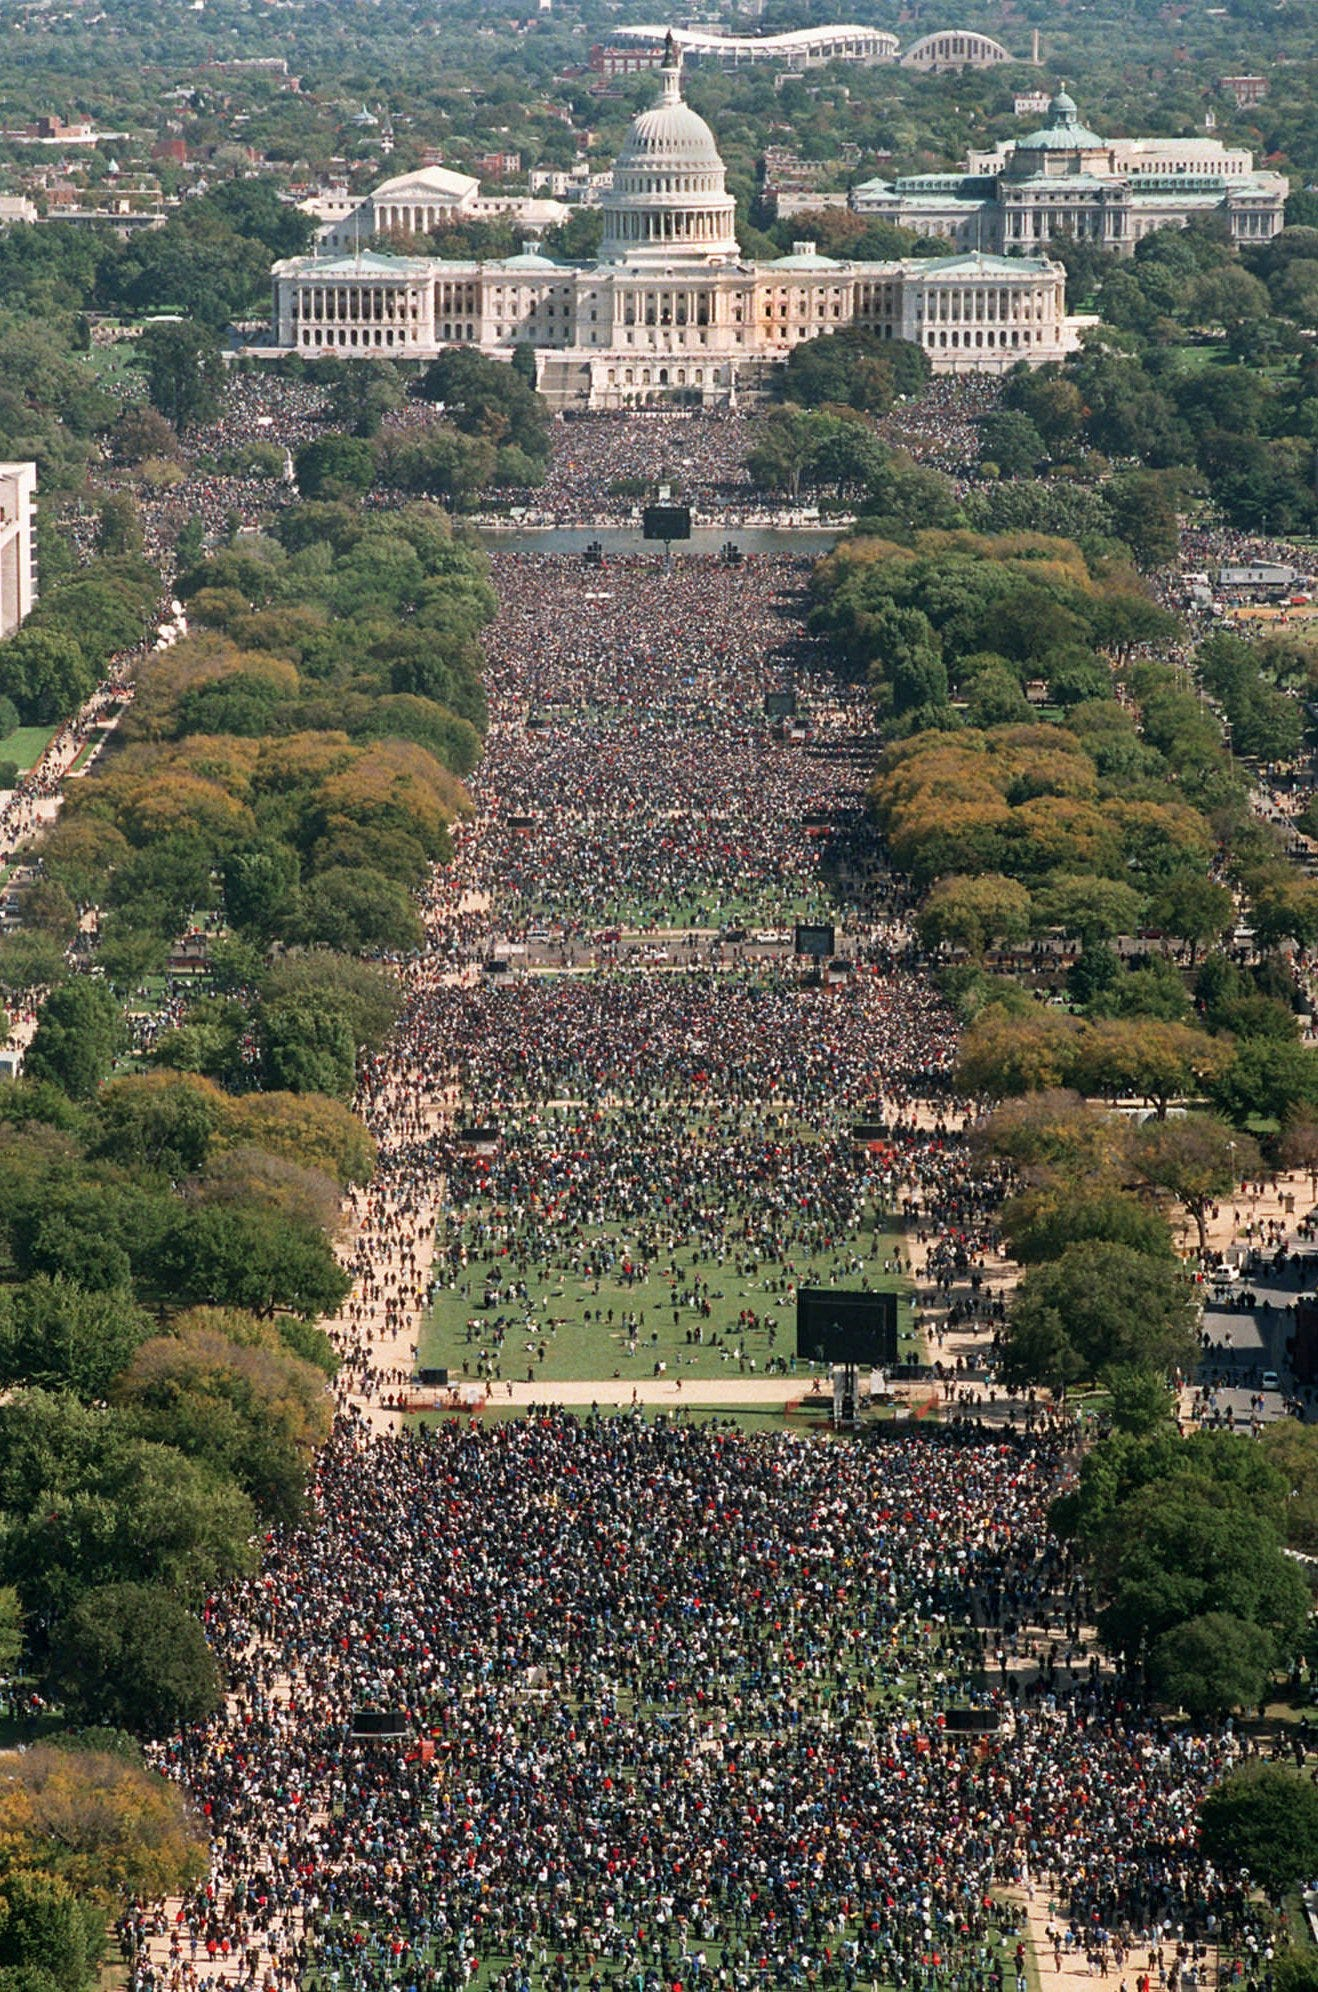 In this file photo from Oct. 16, 1995, the view from the Washington Monument toward the Capitol shows the participants in the Million Man March in Washington.